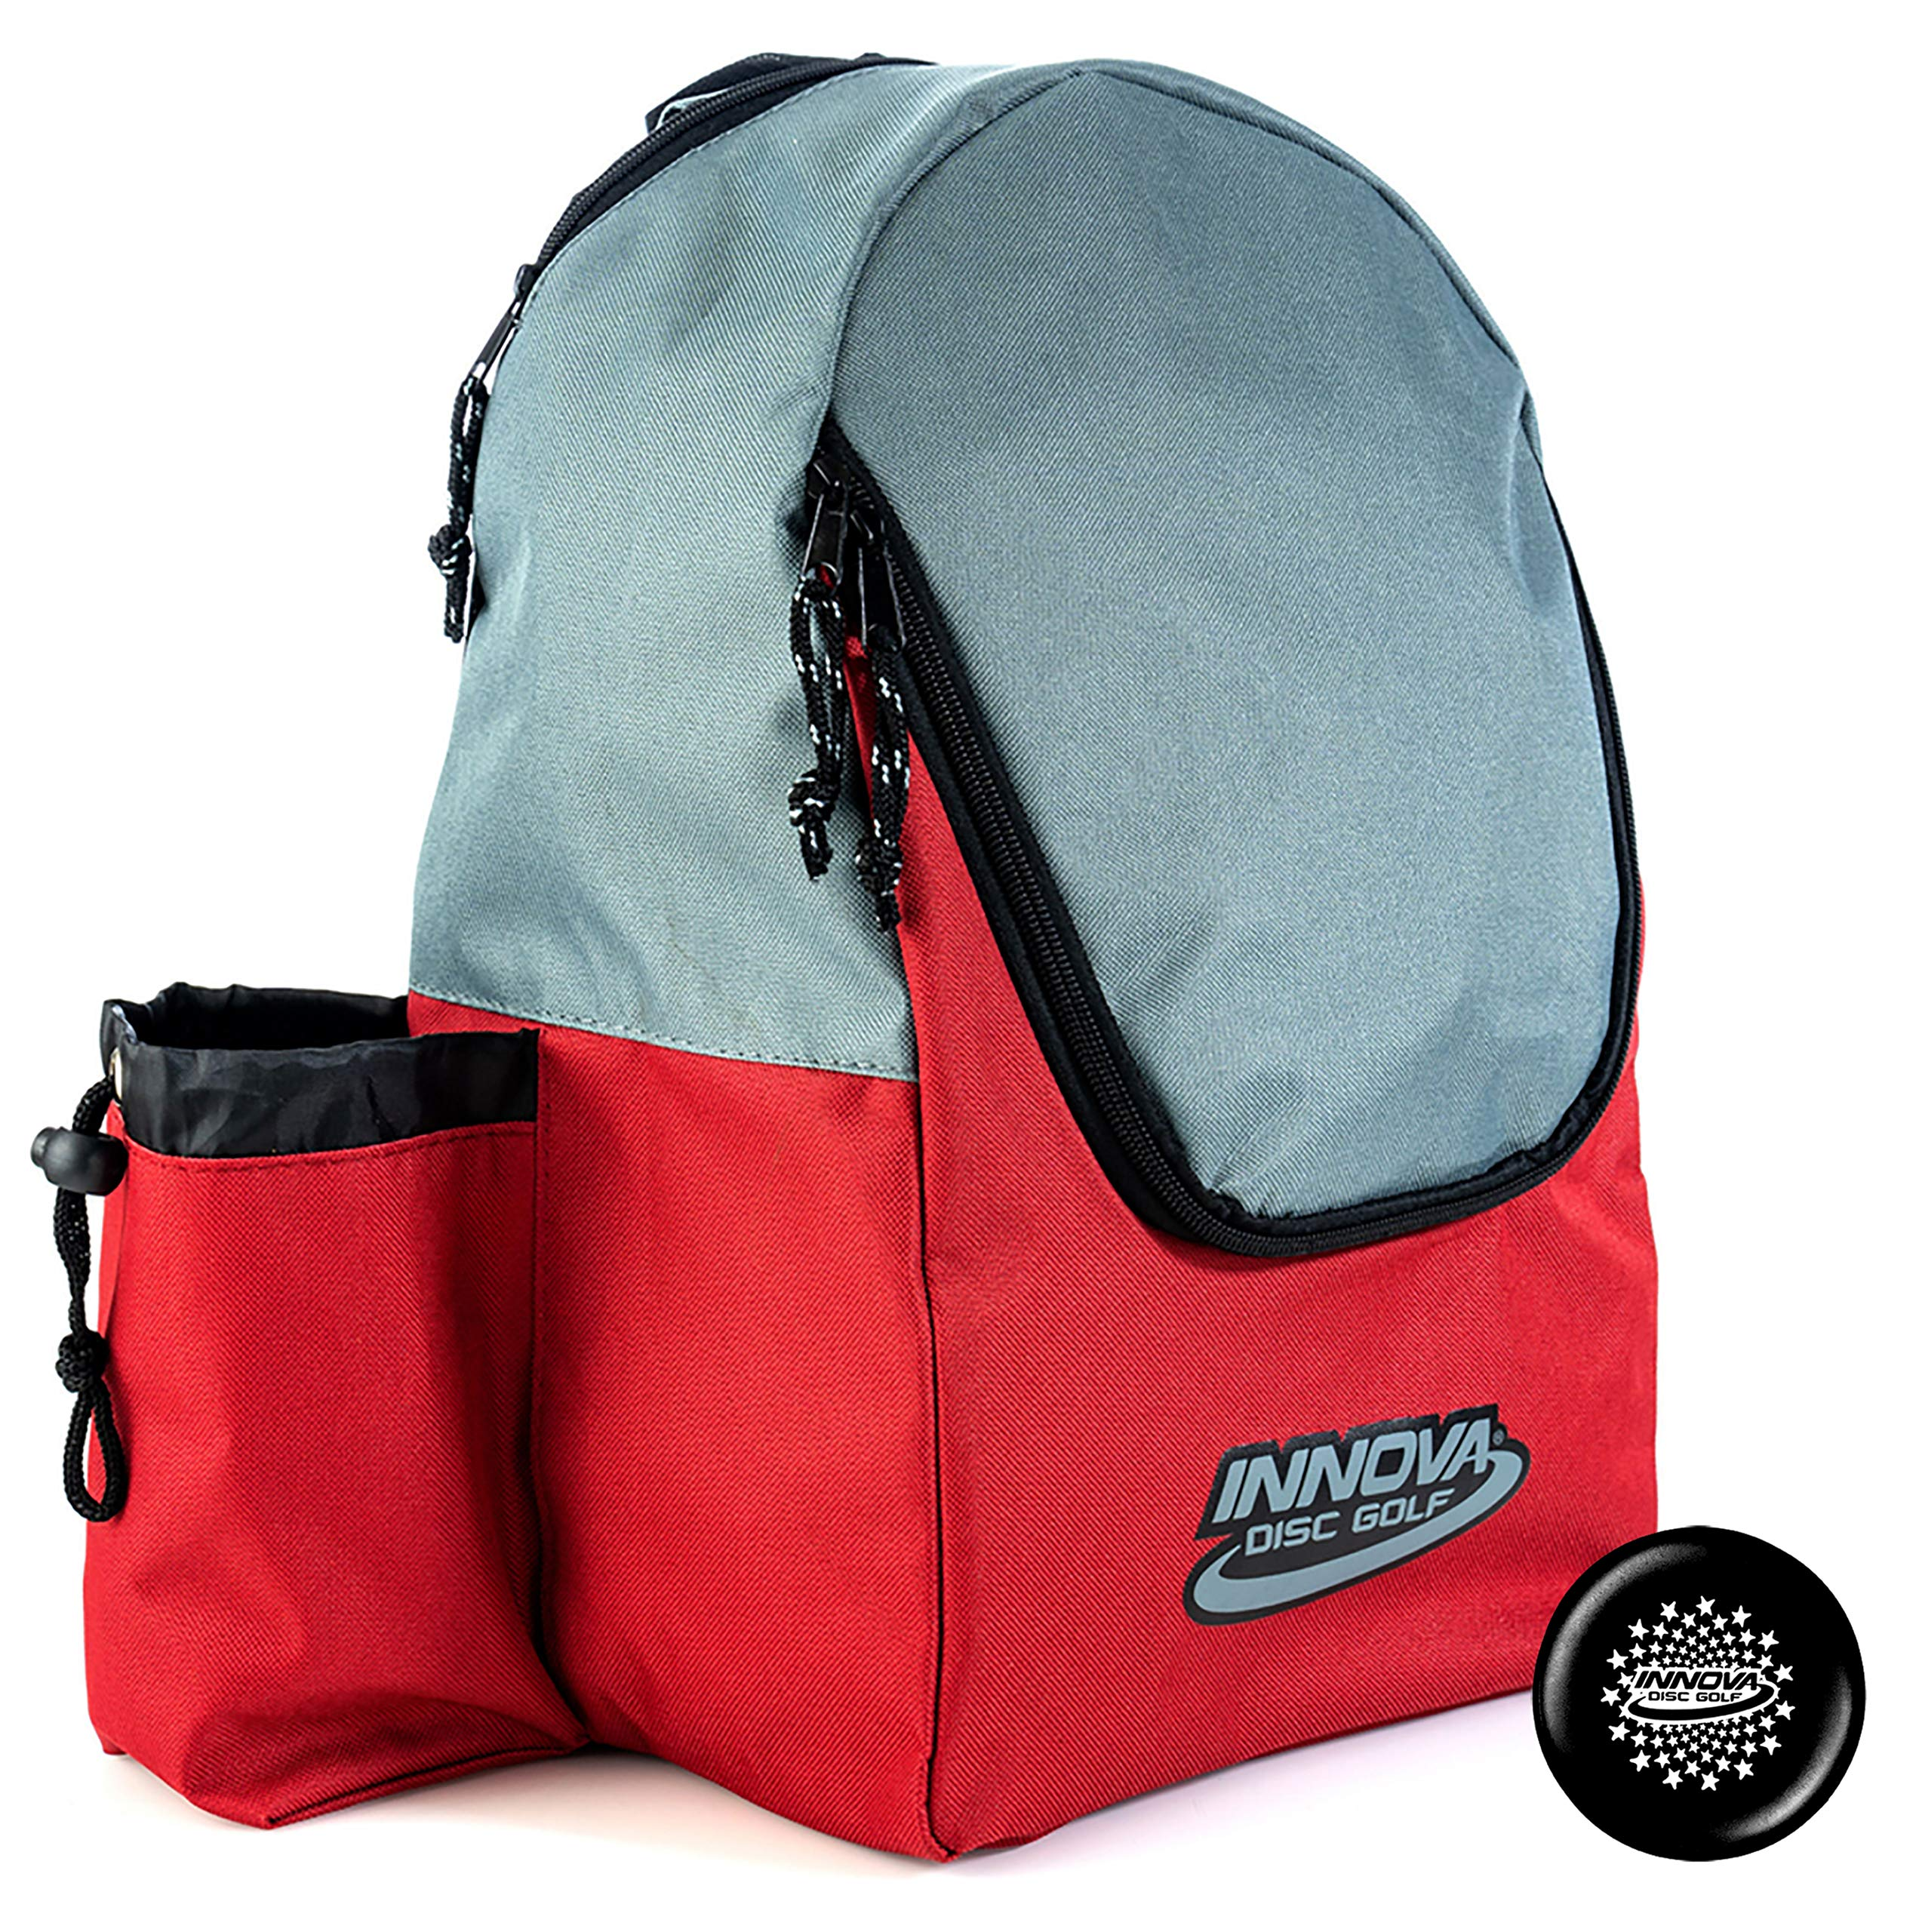 Innova Discover Pack Backpack Disc Golf Bag - Holds 15 Discs - Lightweight and Easy to Carry - Includes Innova Limited Edition Stars Mini Marker (Red/Gray) by Innova Discs